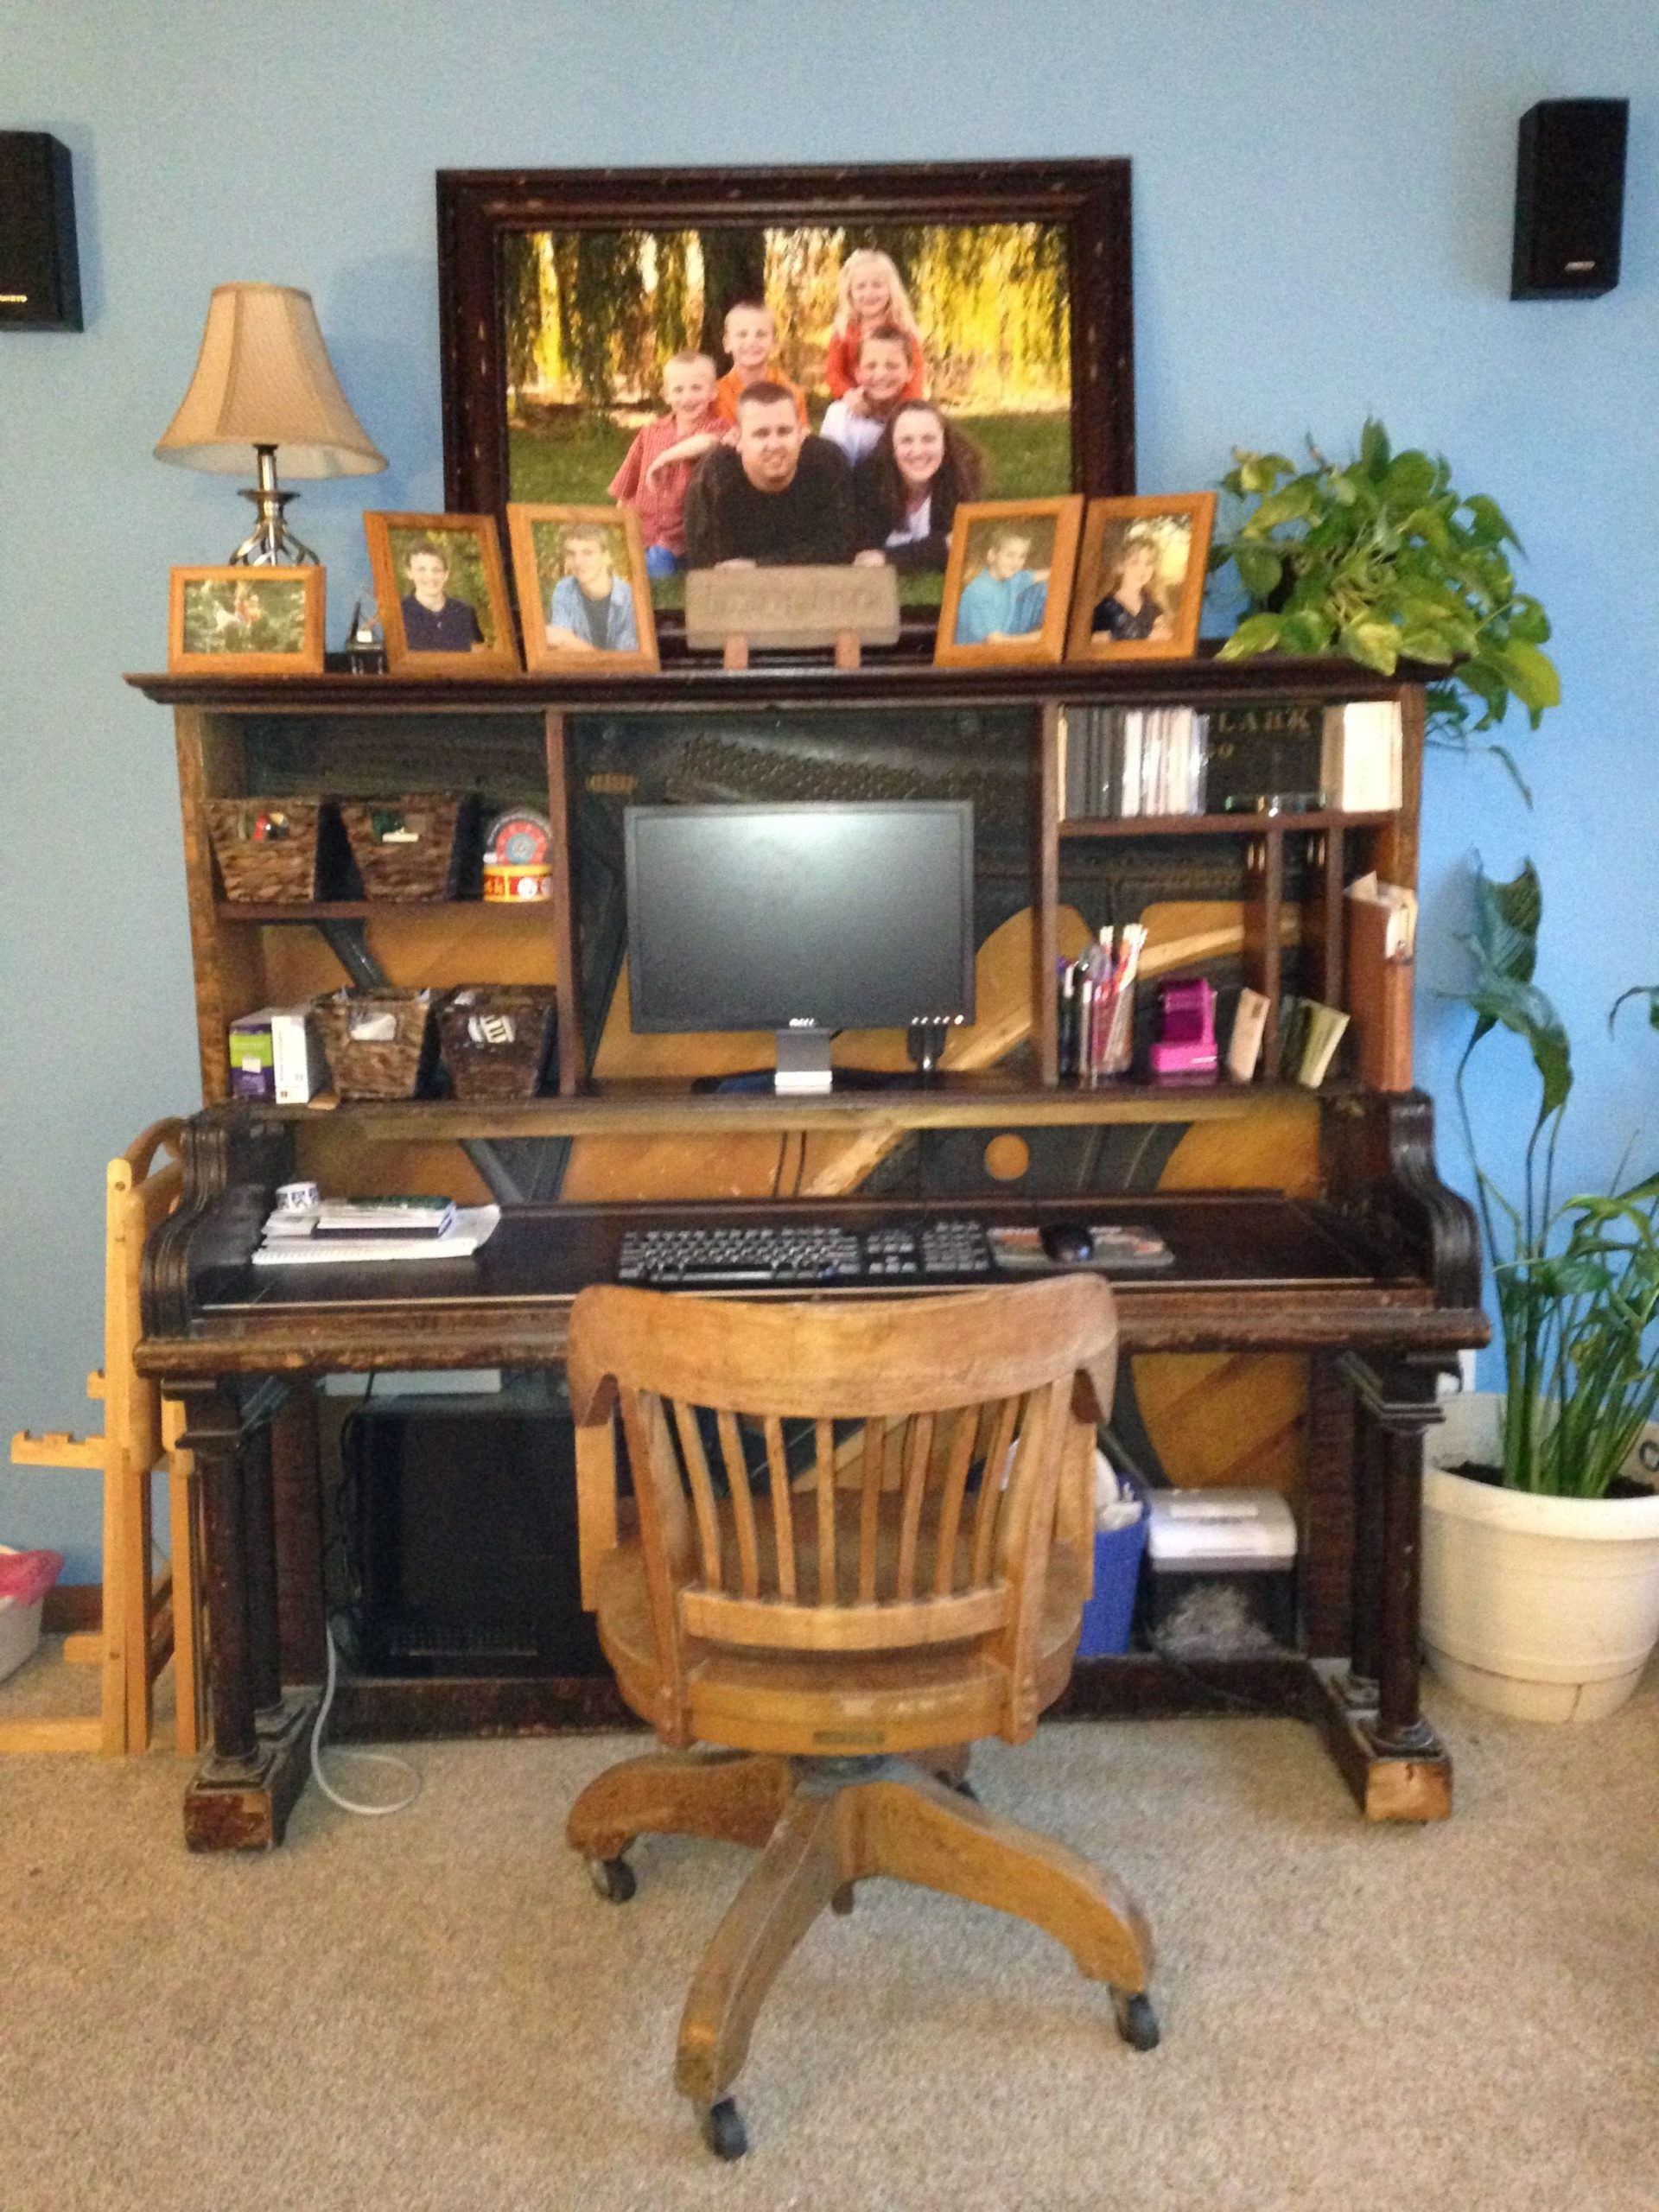 Repurposed Old Piano into a Computer Table